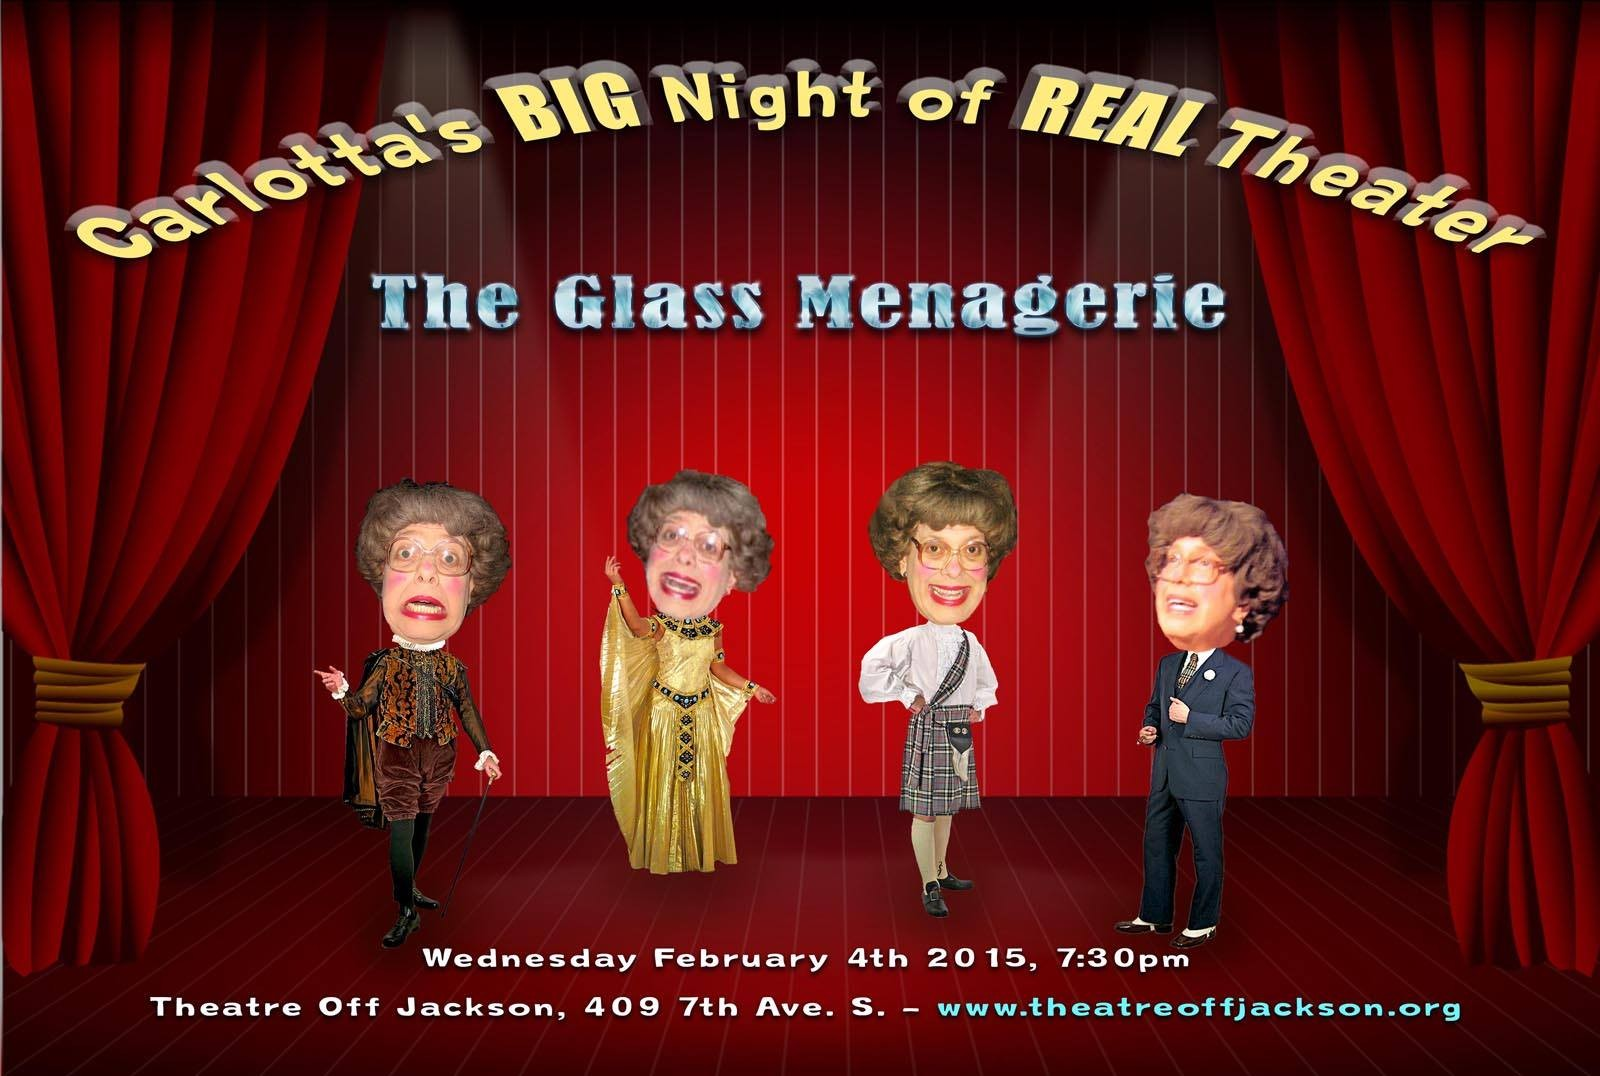 Carlotta's BIG Night of REAL Theater: The Glass Menagerie at